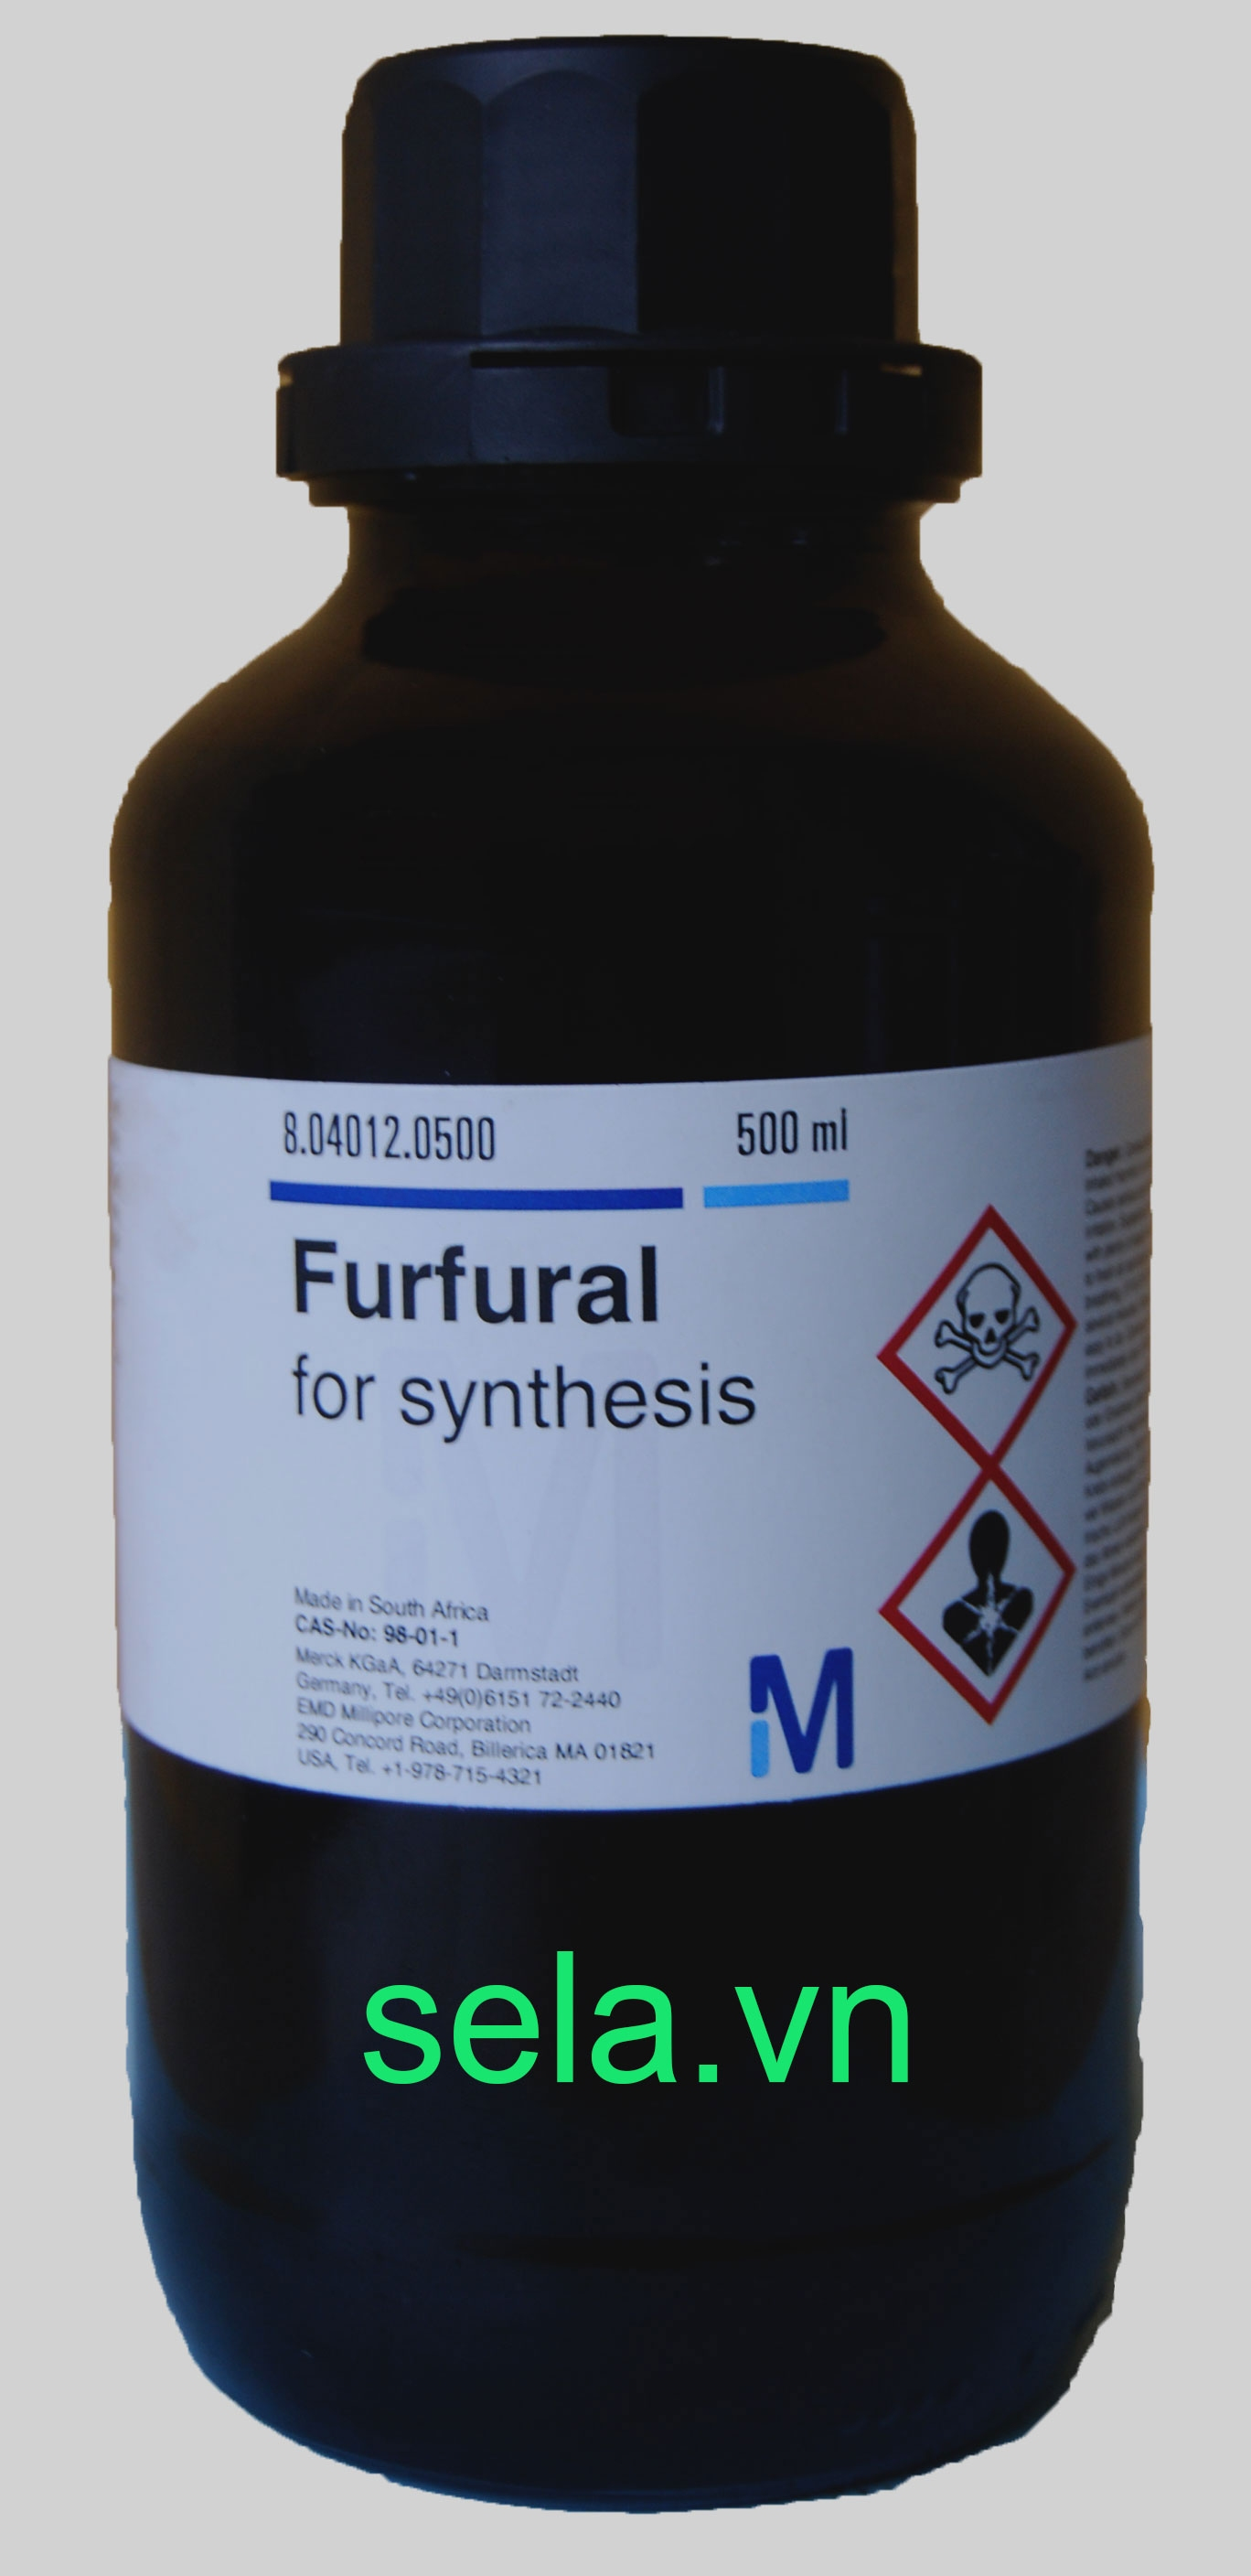 Furfural for synthesis